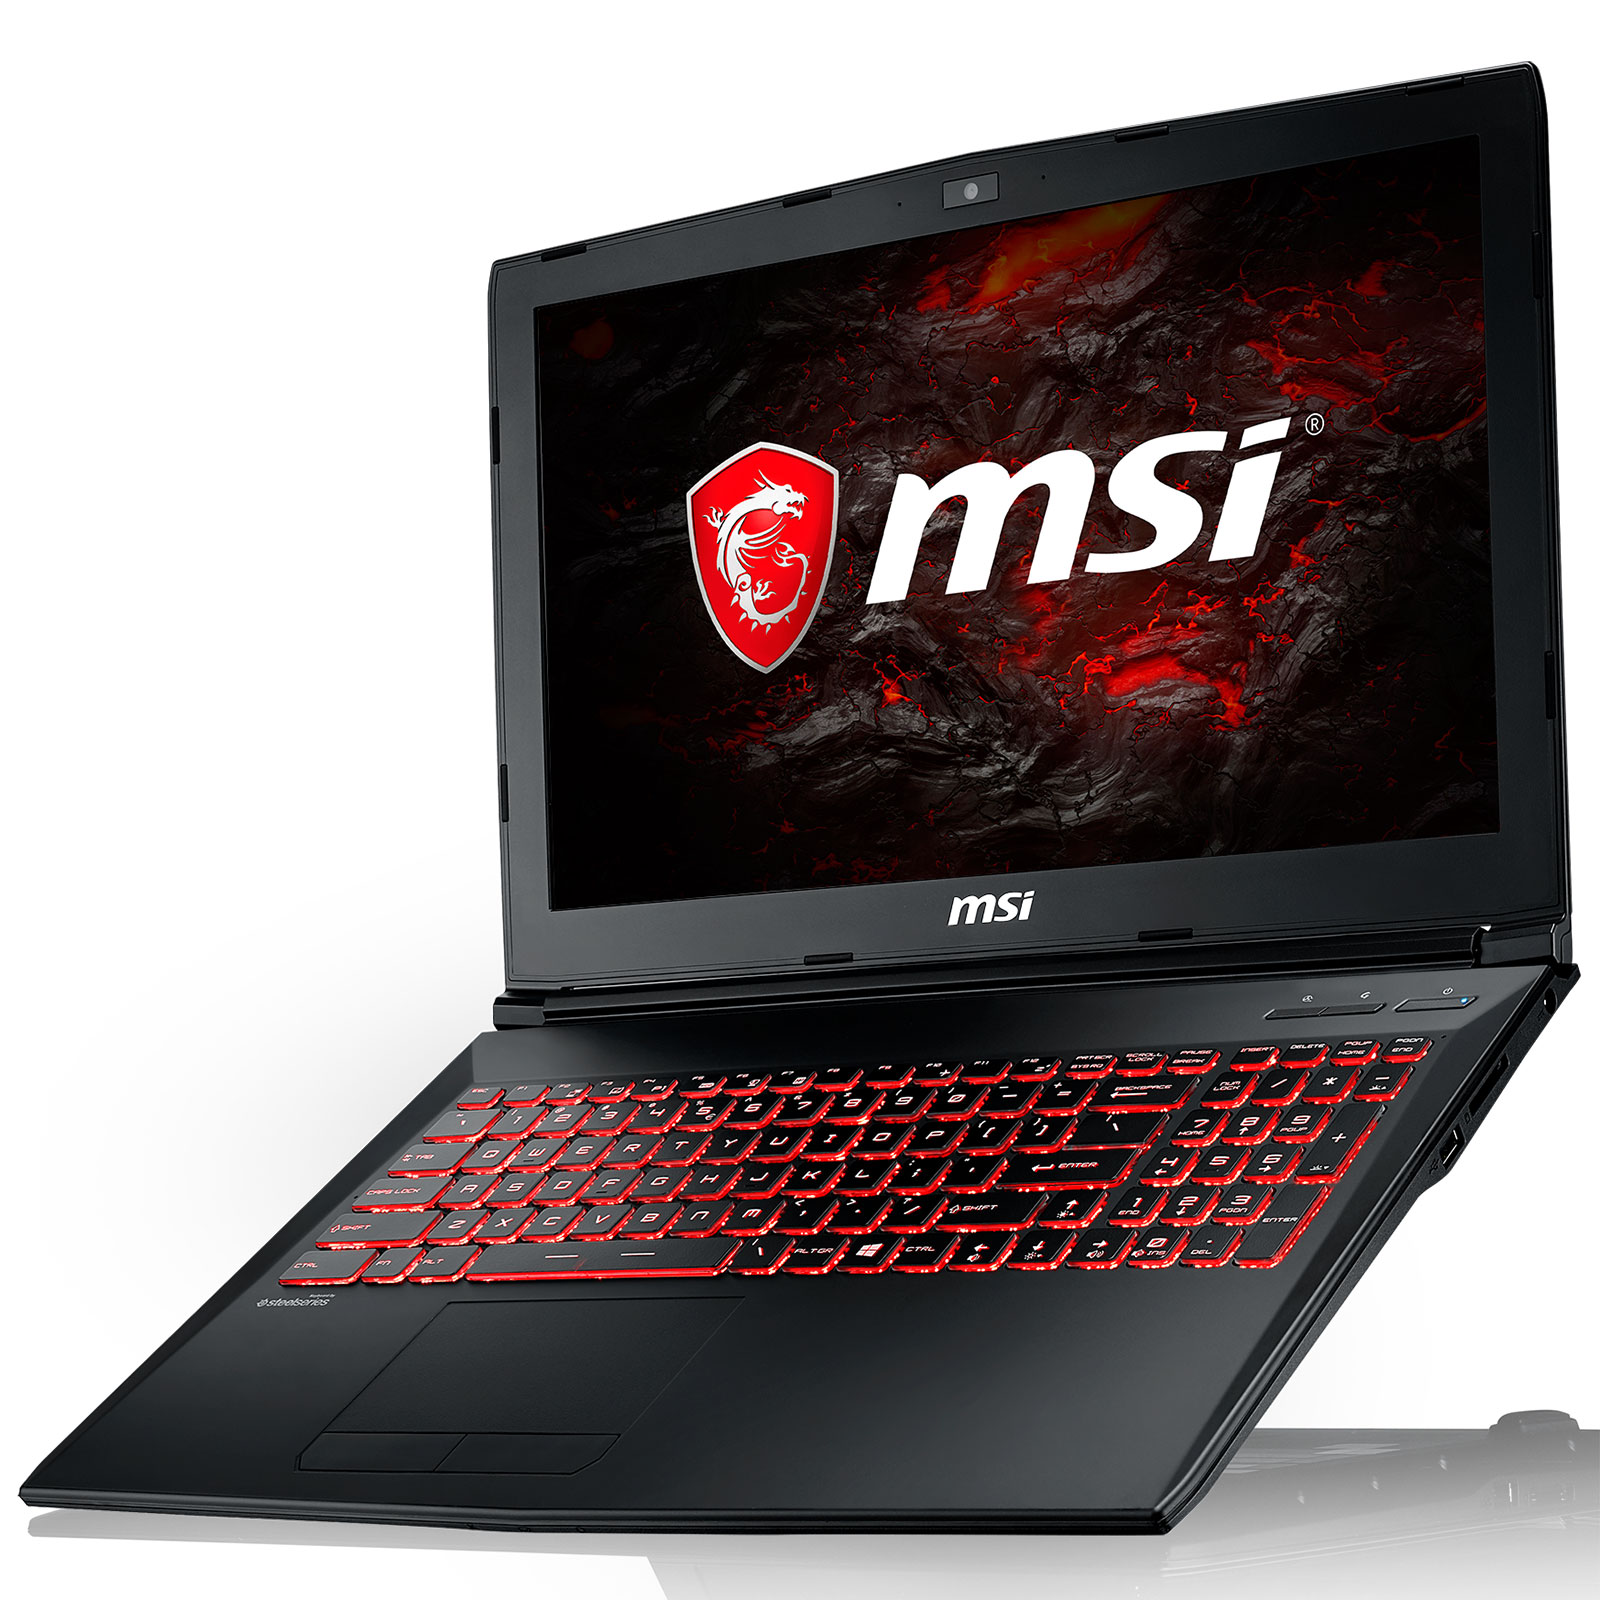 msi gl62m 7rdx 2074xfr pc portable msi sur. Black Bedroom Furniture Sets. Home Design Ideas